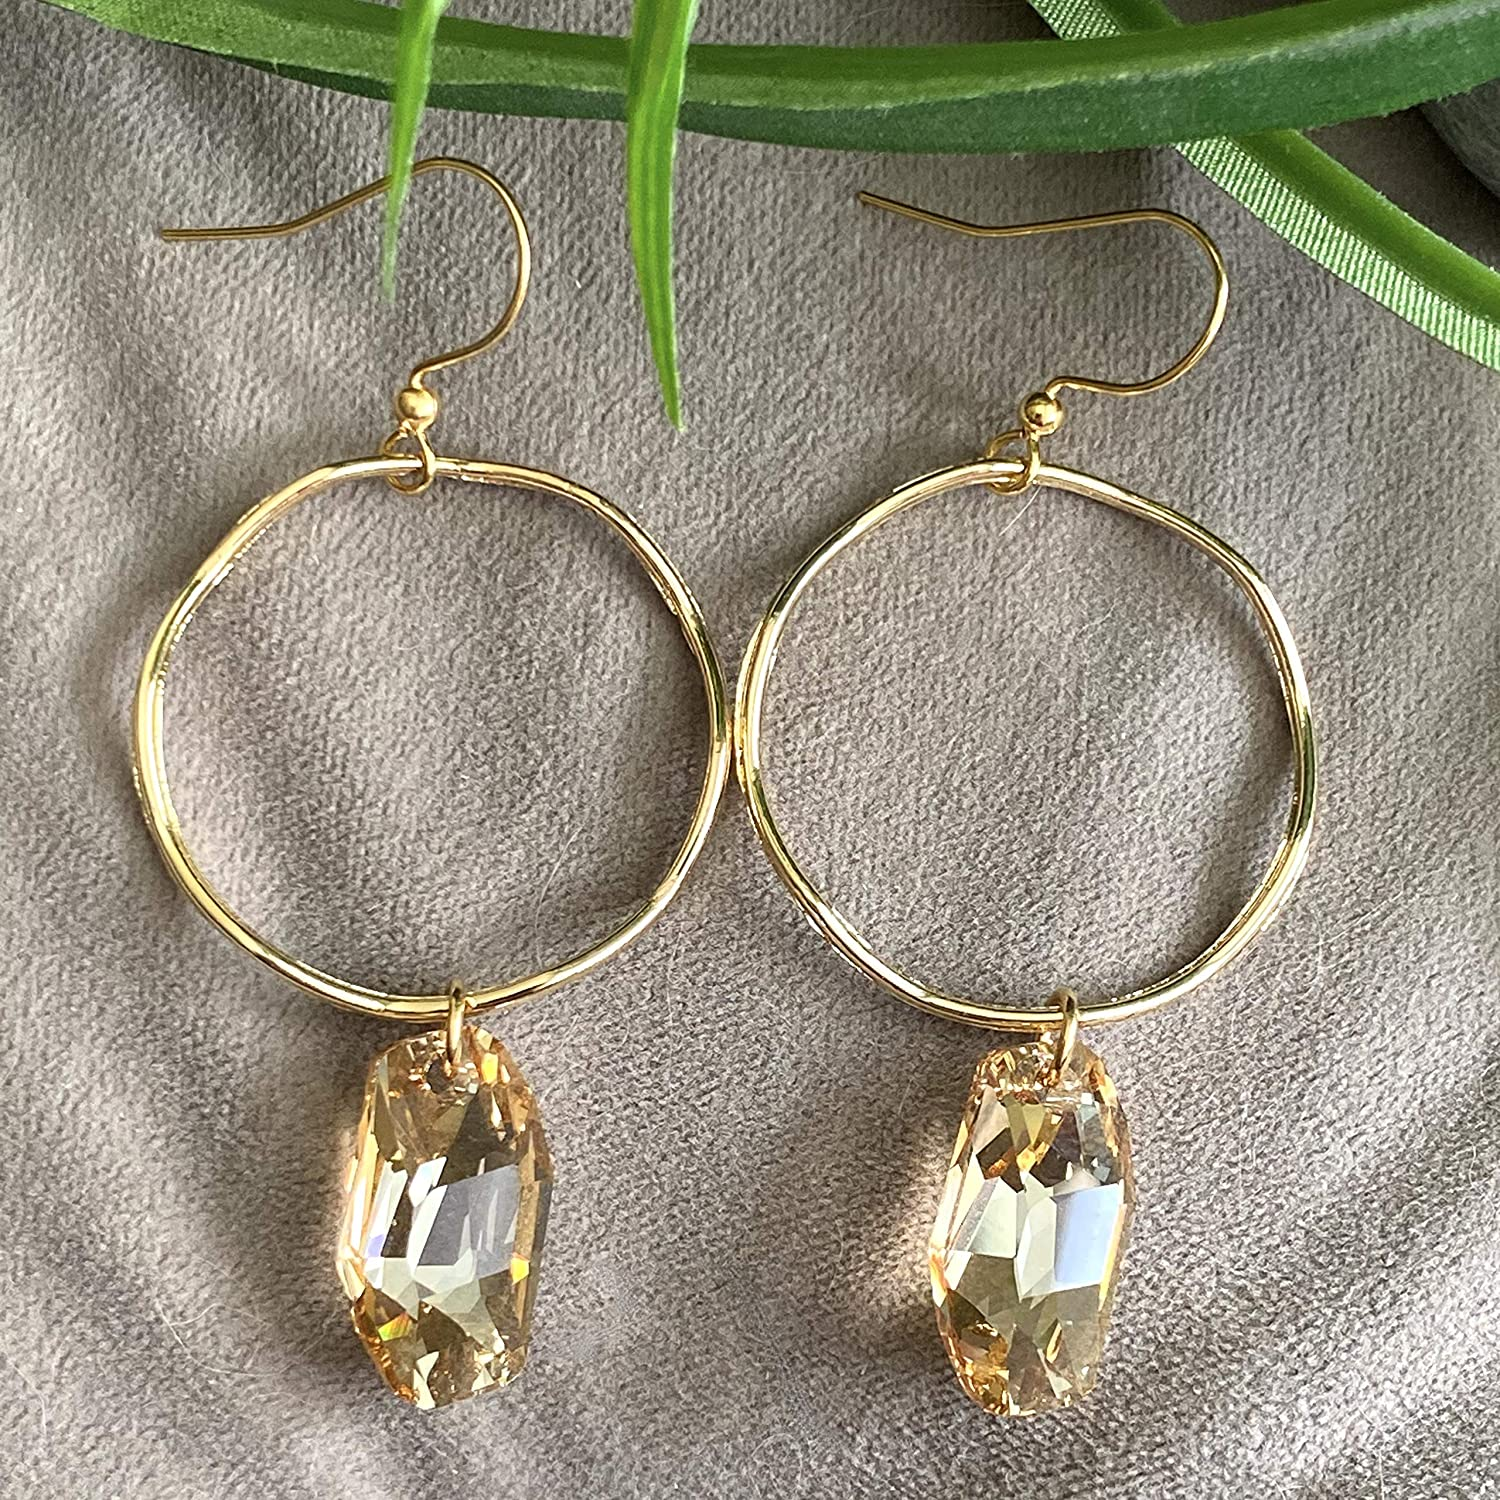 Swarovski Crystal Earrings Gold Wavy Hoop New Indianapolis Mall mail order